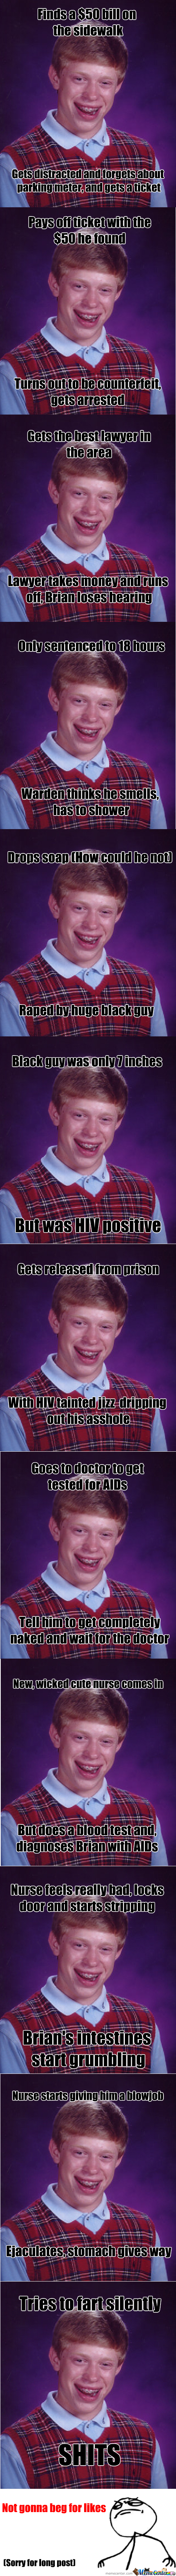 Bad Luck Brian Legacy